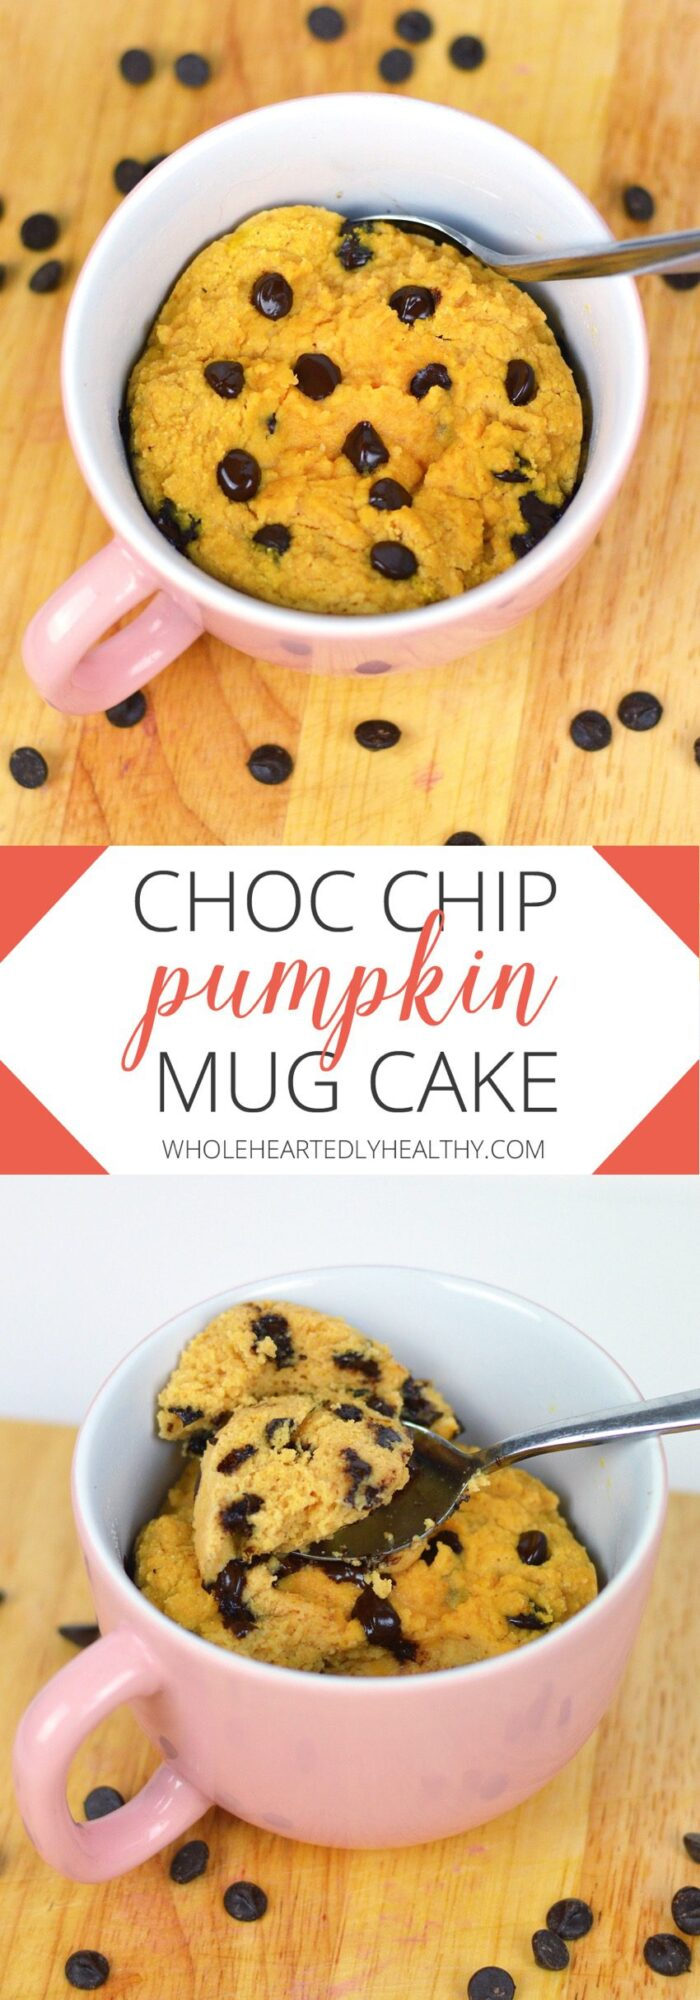 Choc chip pumpkin mug cake recipe